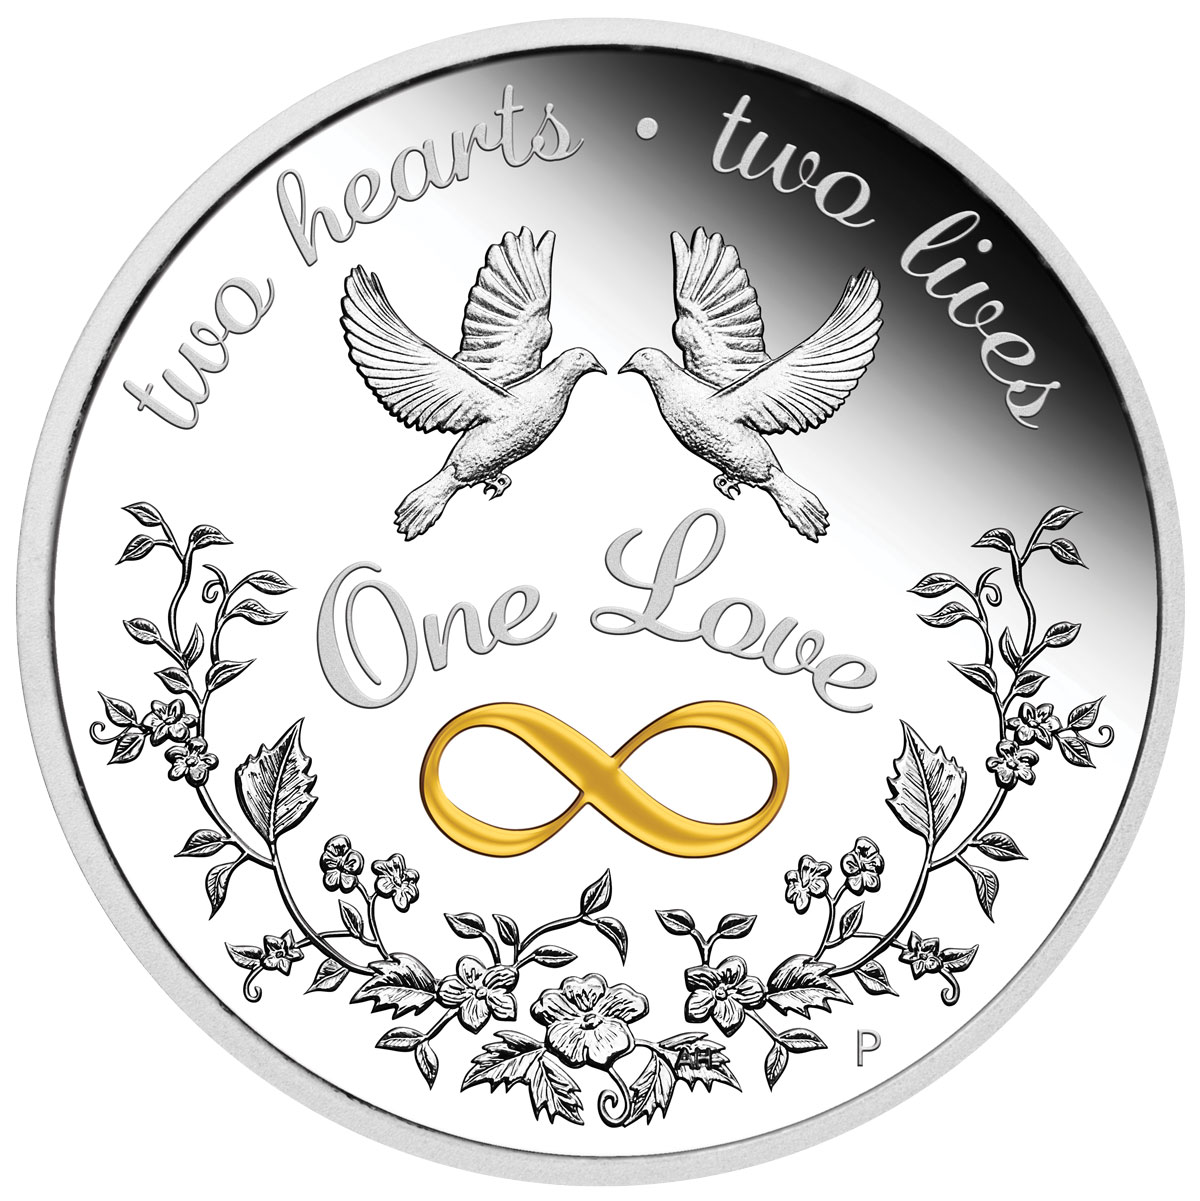 2020-P Australia One Love 1 oz Silver Proof $1 Coin GEM Proof OGP